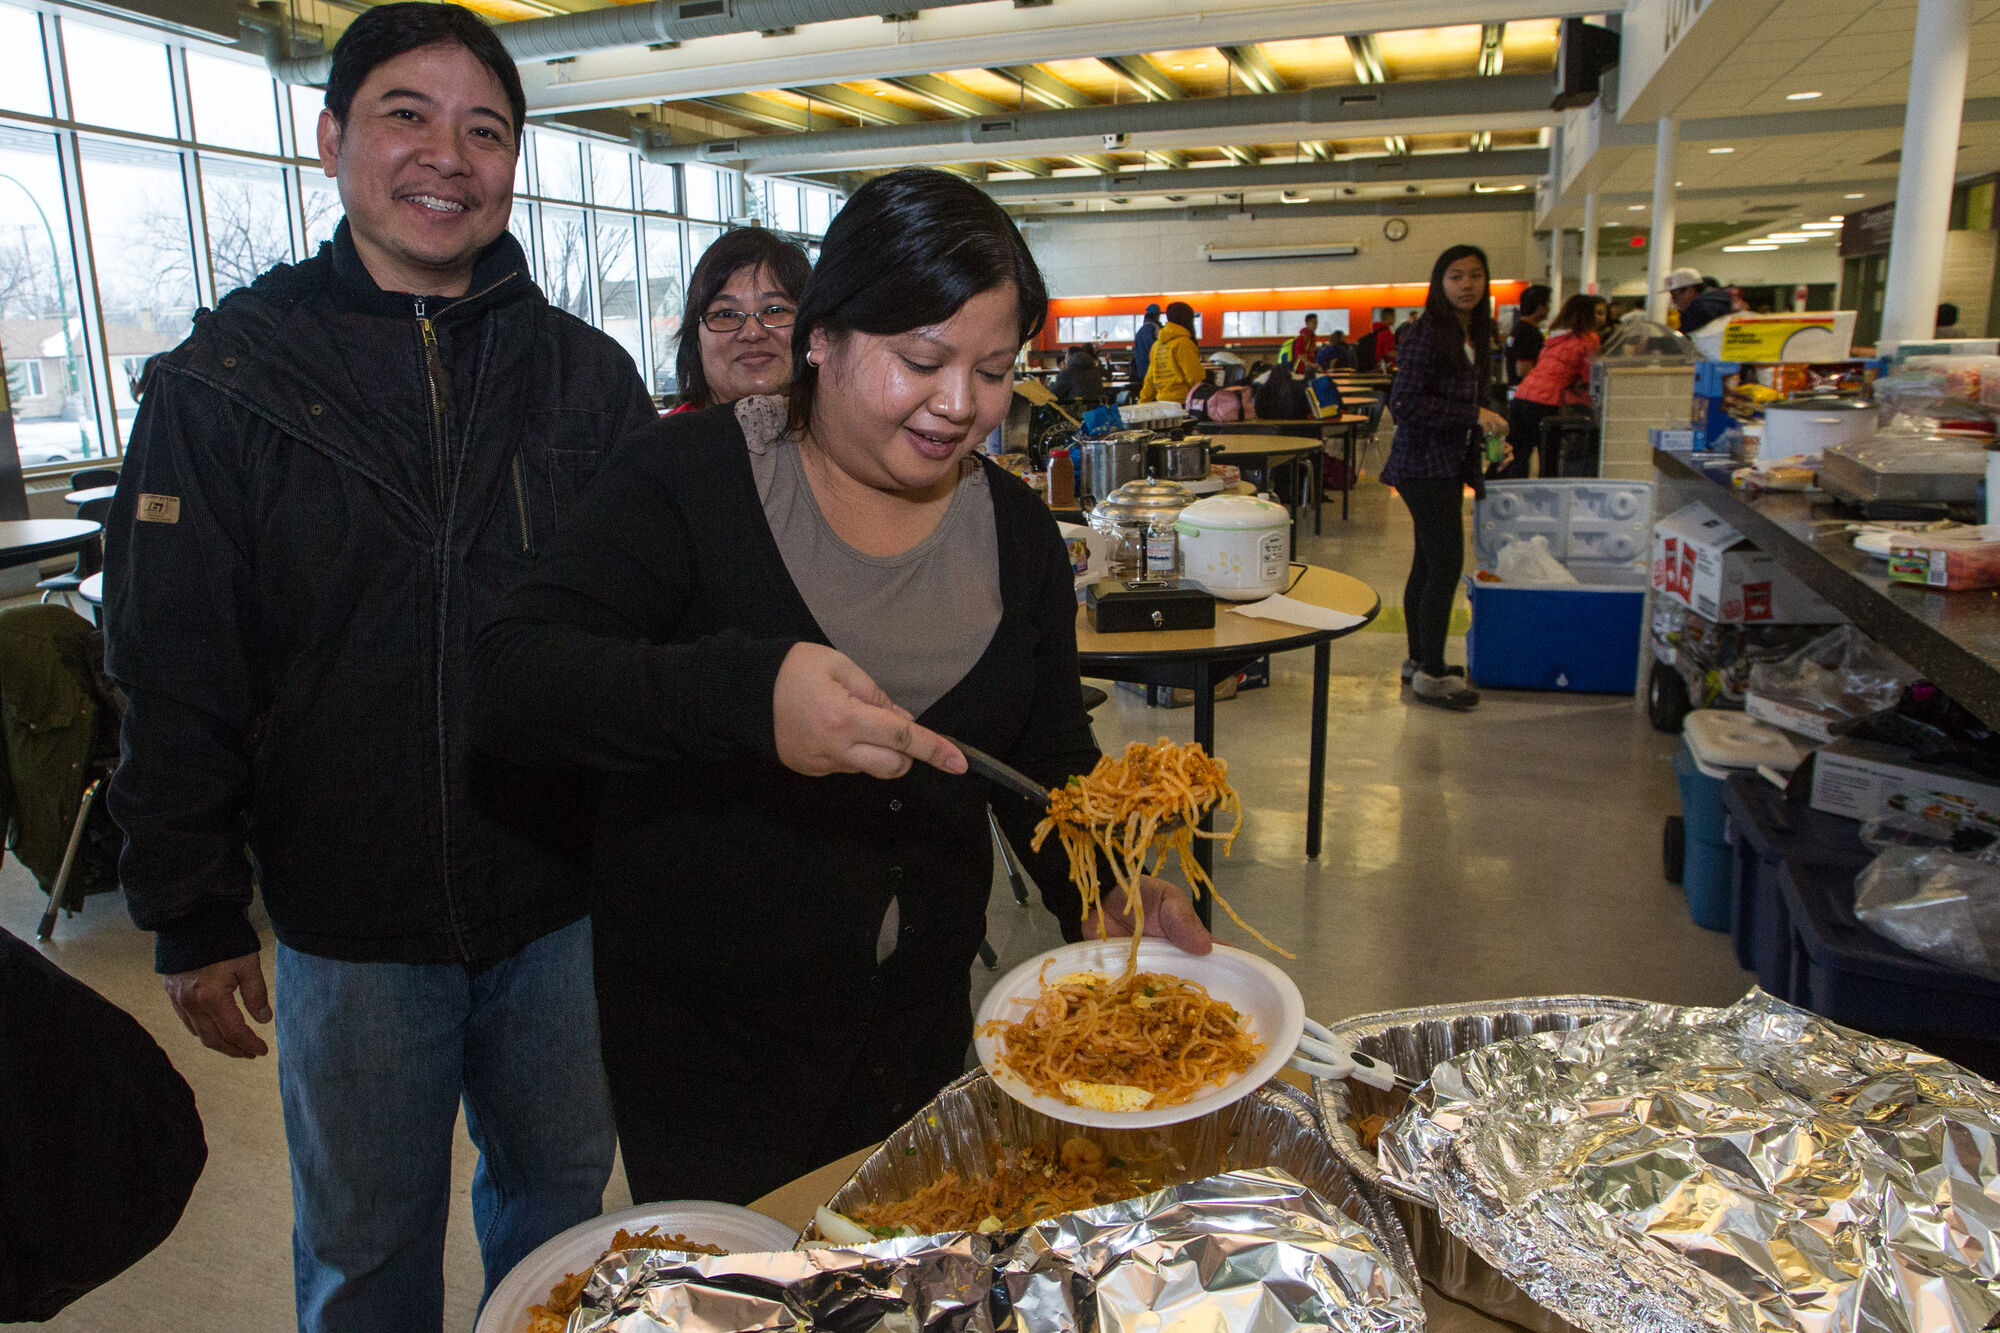 Liz Leung serves up a traditional dish of palabok during the all-day event at Garden City Collegiate. On the menu: pancit, grilled pork chops with rice along with lumpia, empanadas and ginataan.